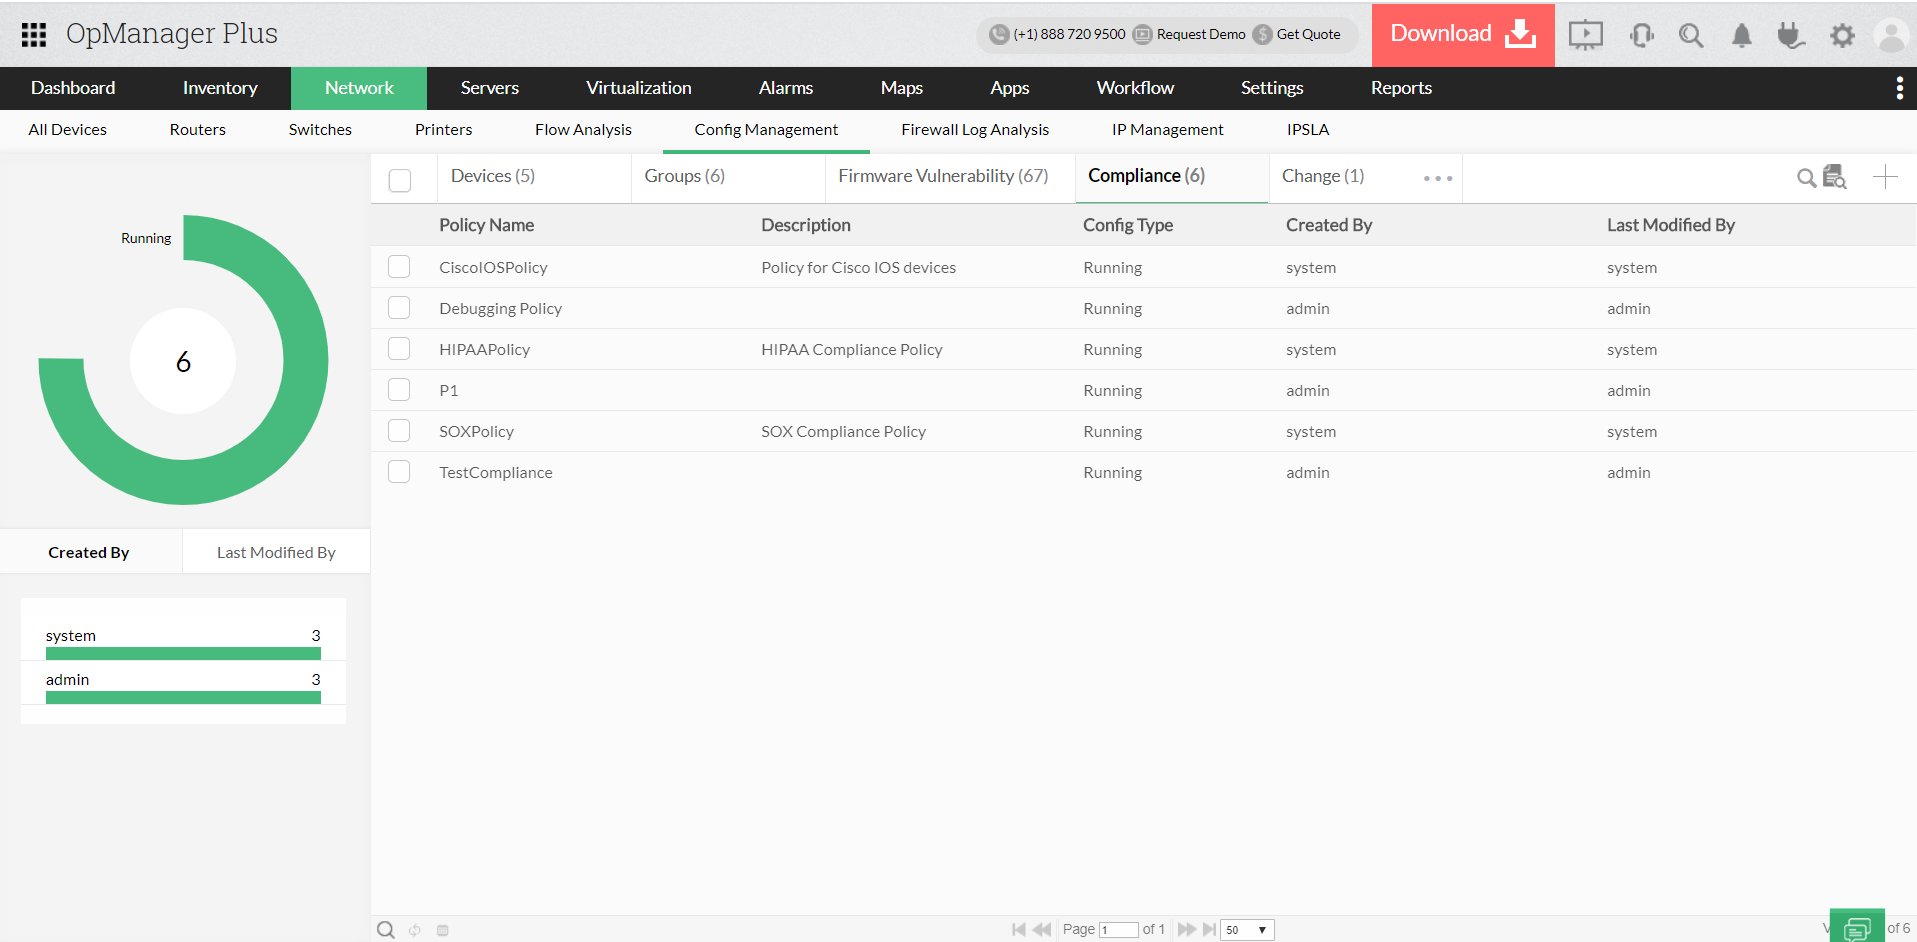 Network Configuration & Compliance Management - ManageEngine OpManager Plus